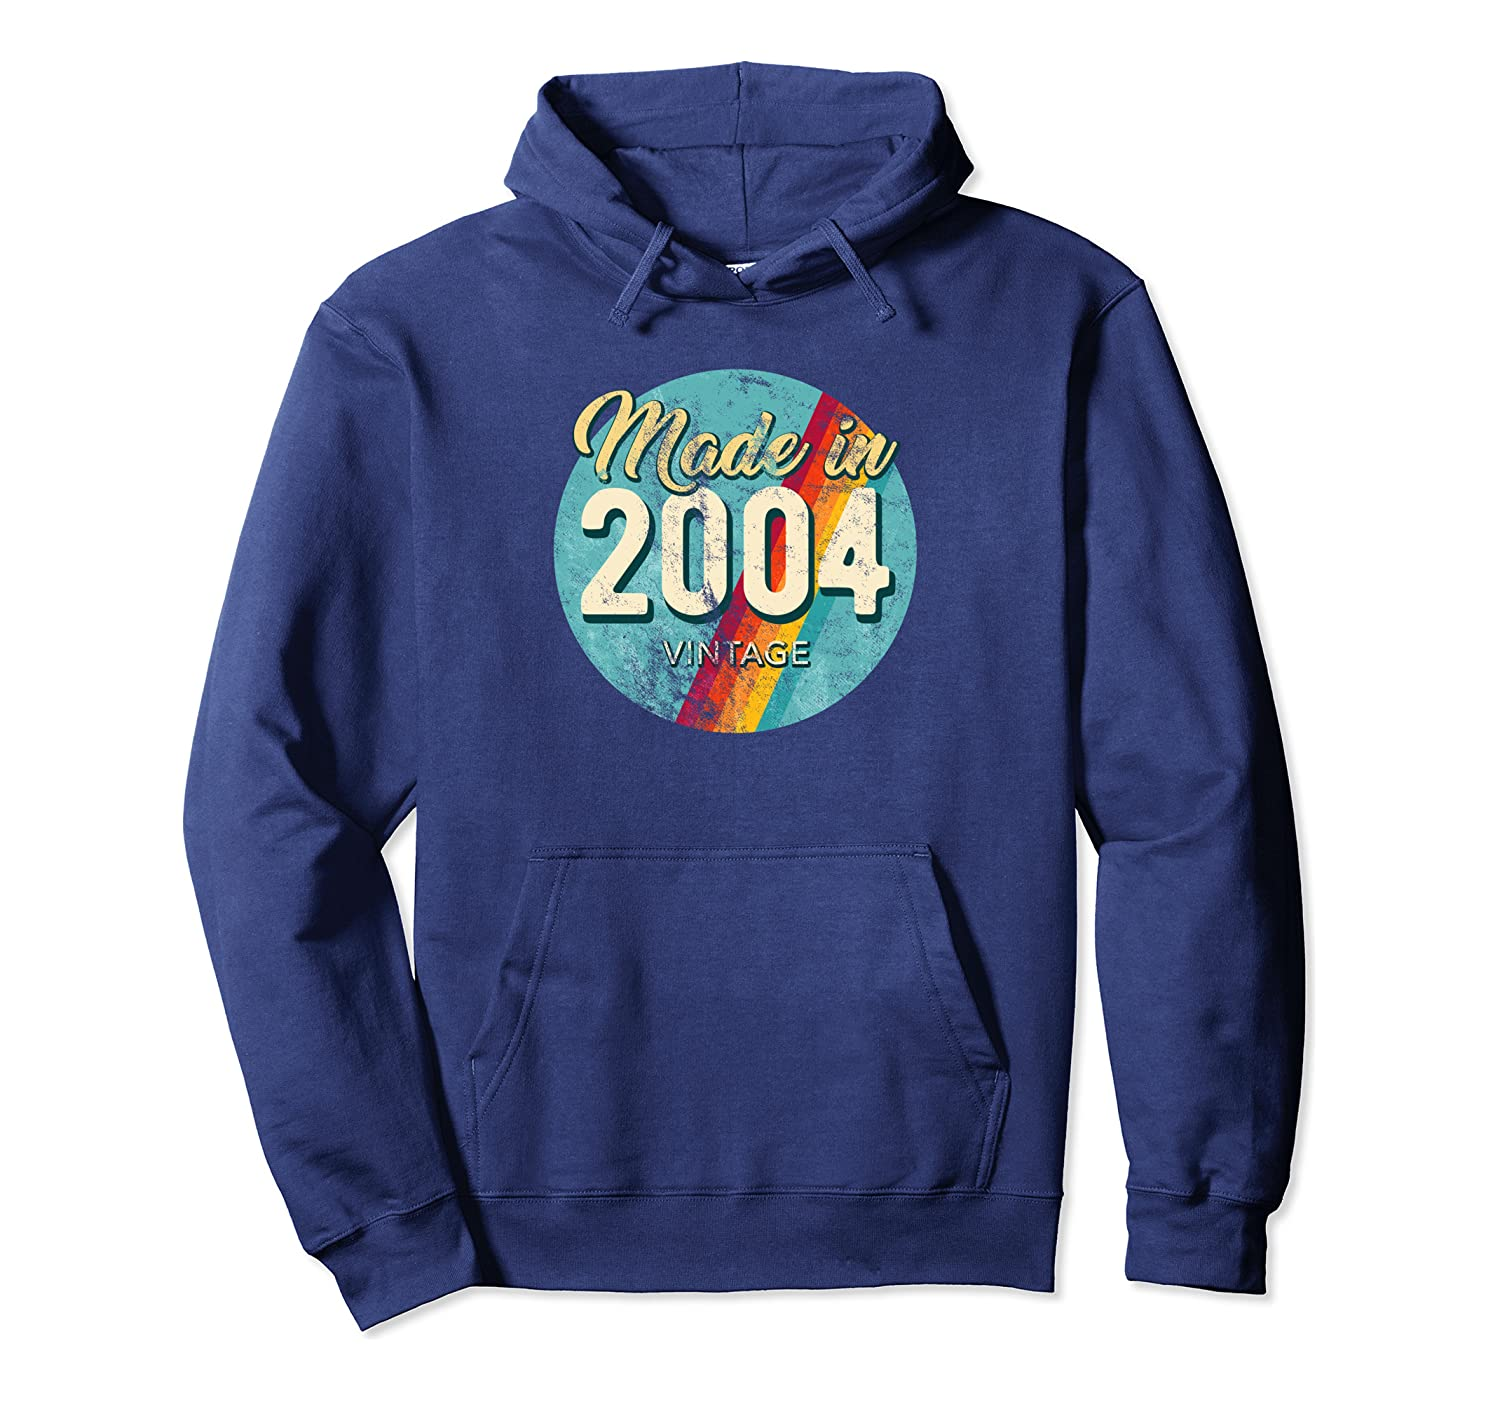 Made In 2004 Vintage 15th Birthday Retro Throwback Pullover Hoodie